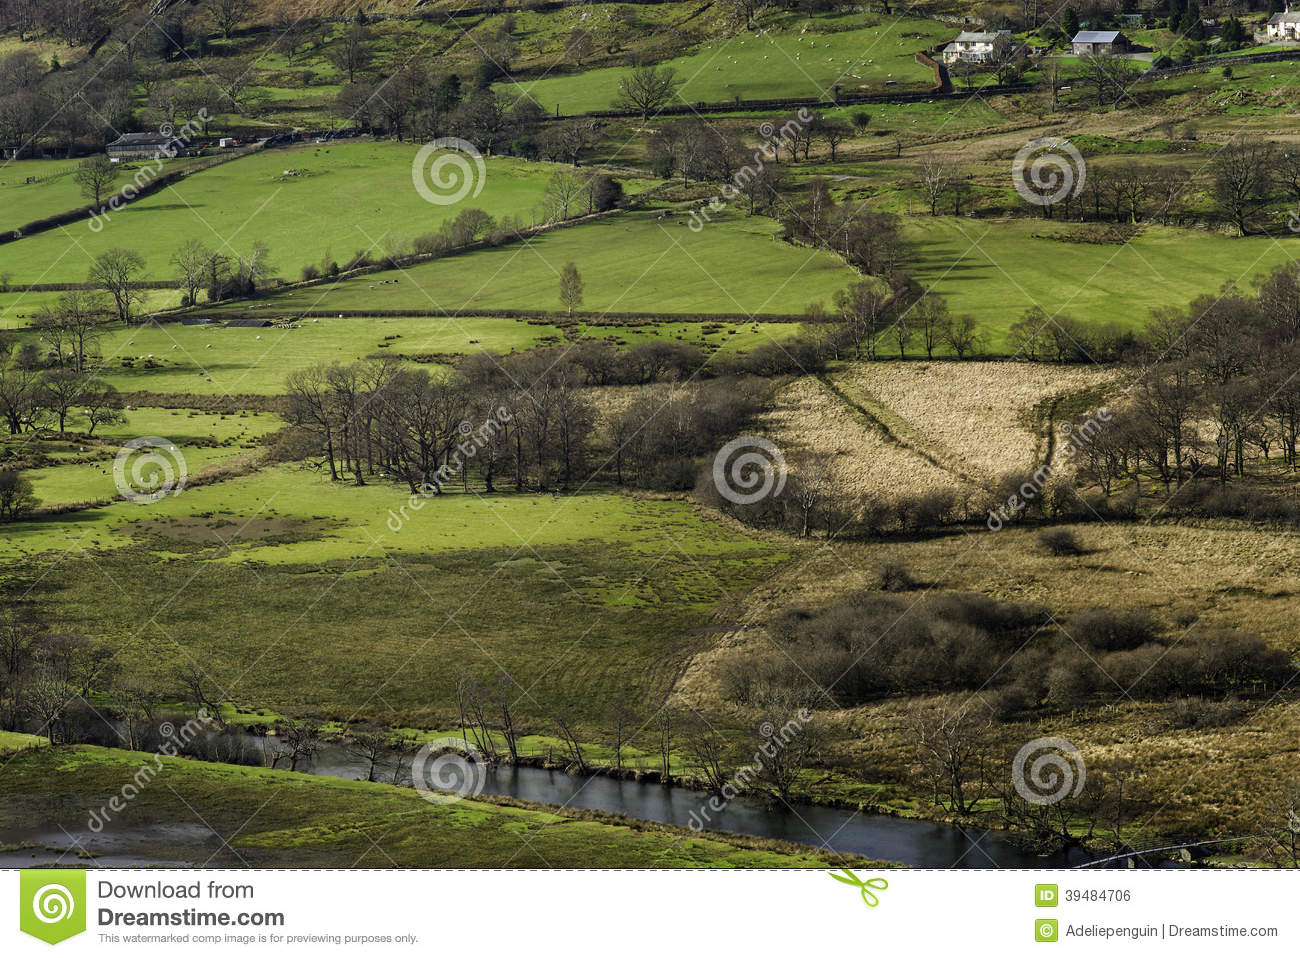 Borrowdale Valley United Kingdom  city pictures gallery : ... near Derwentwater, Cumbria in the Lake District of the United Kingdom